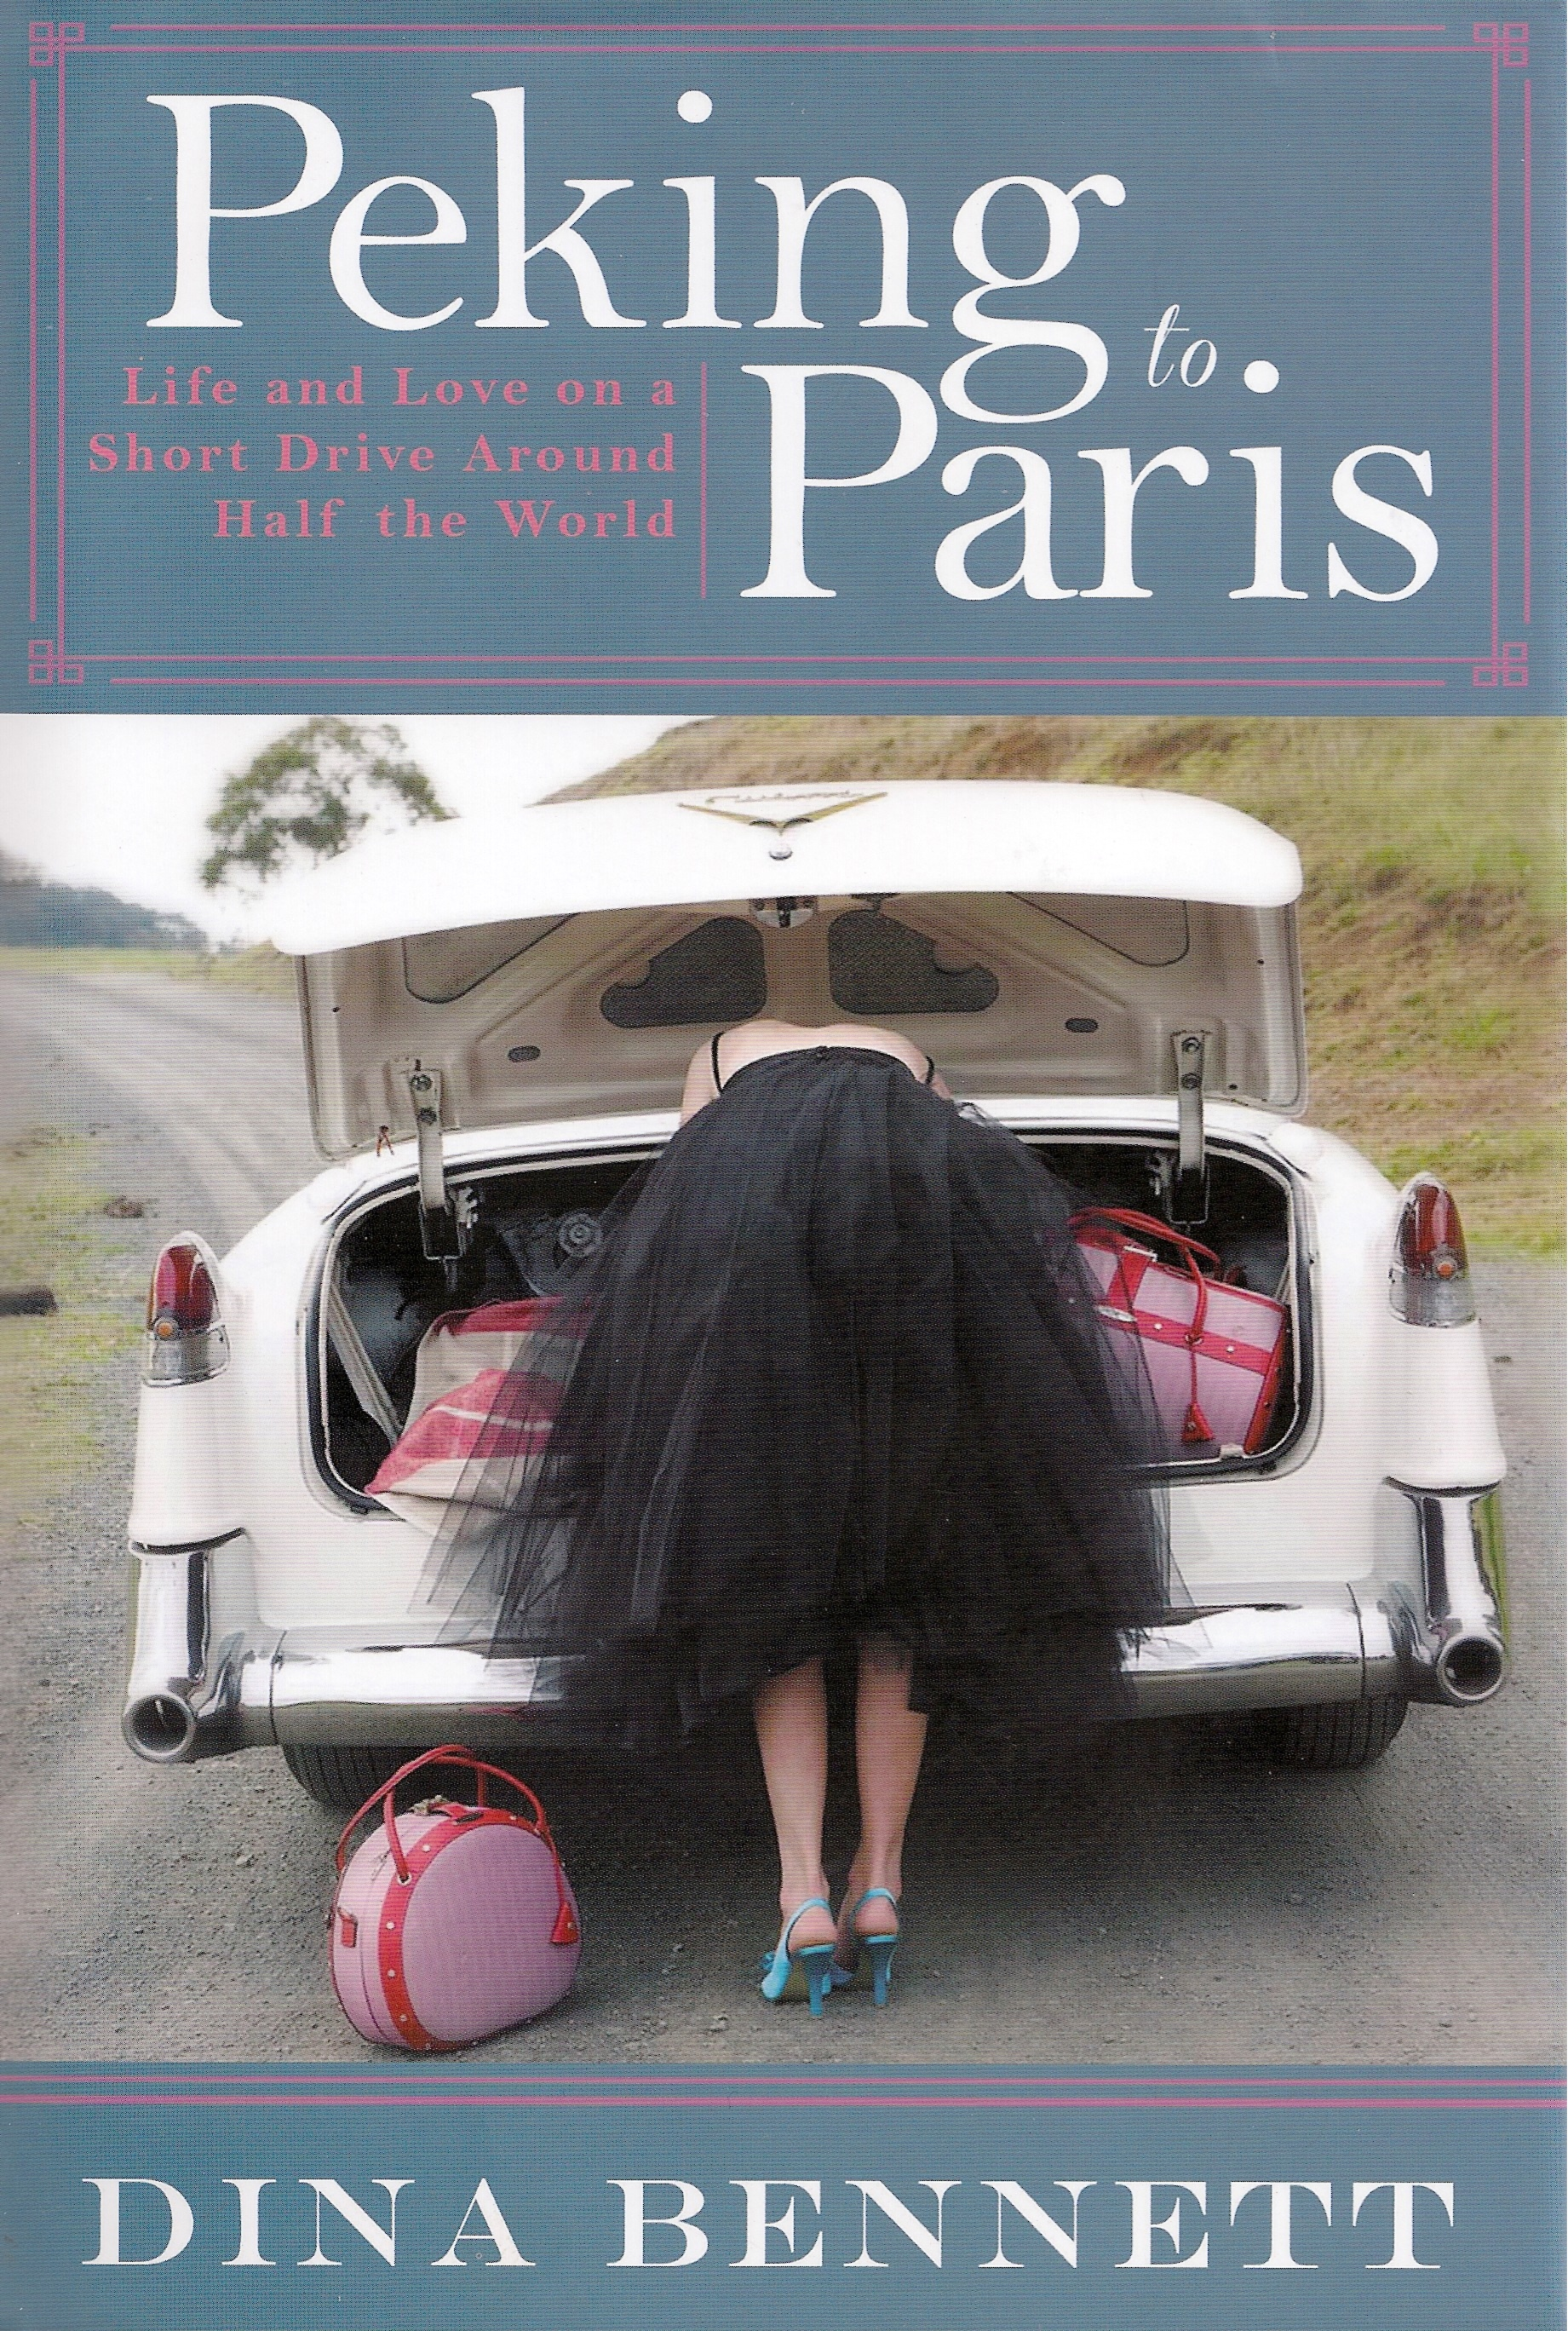 Peking To Paris New Book About This Long Rally - Car rally near me